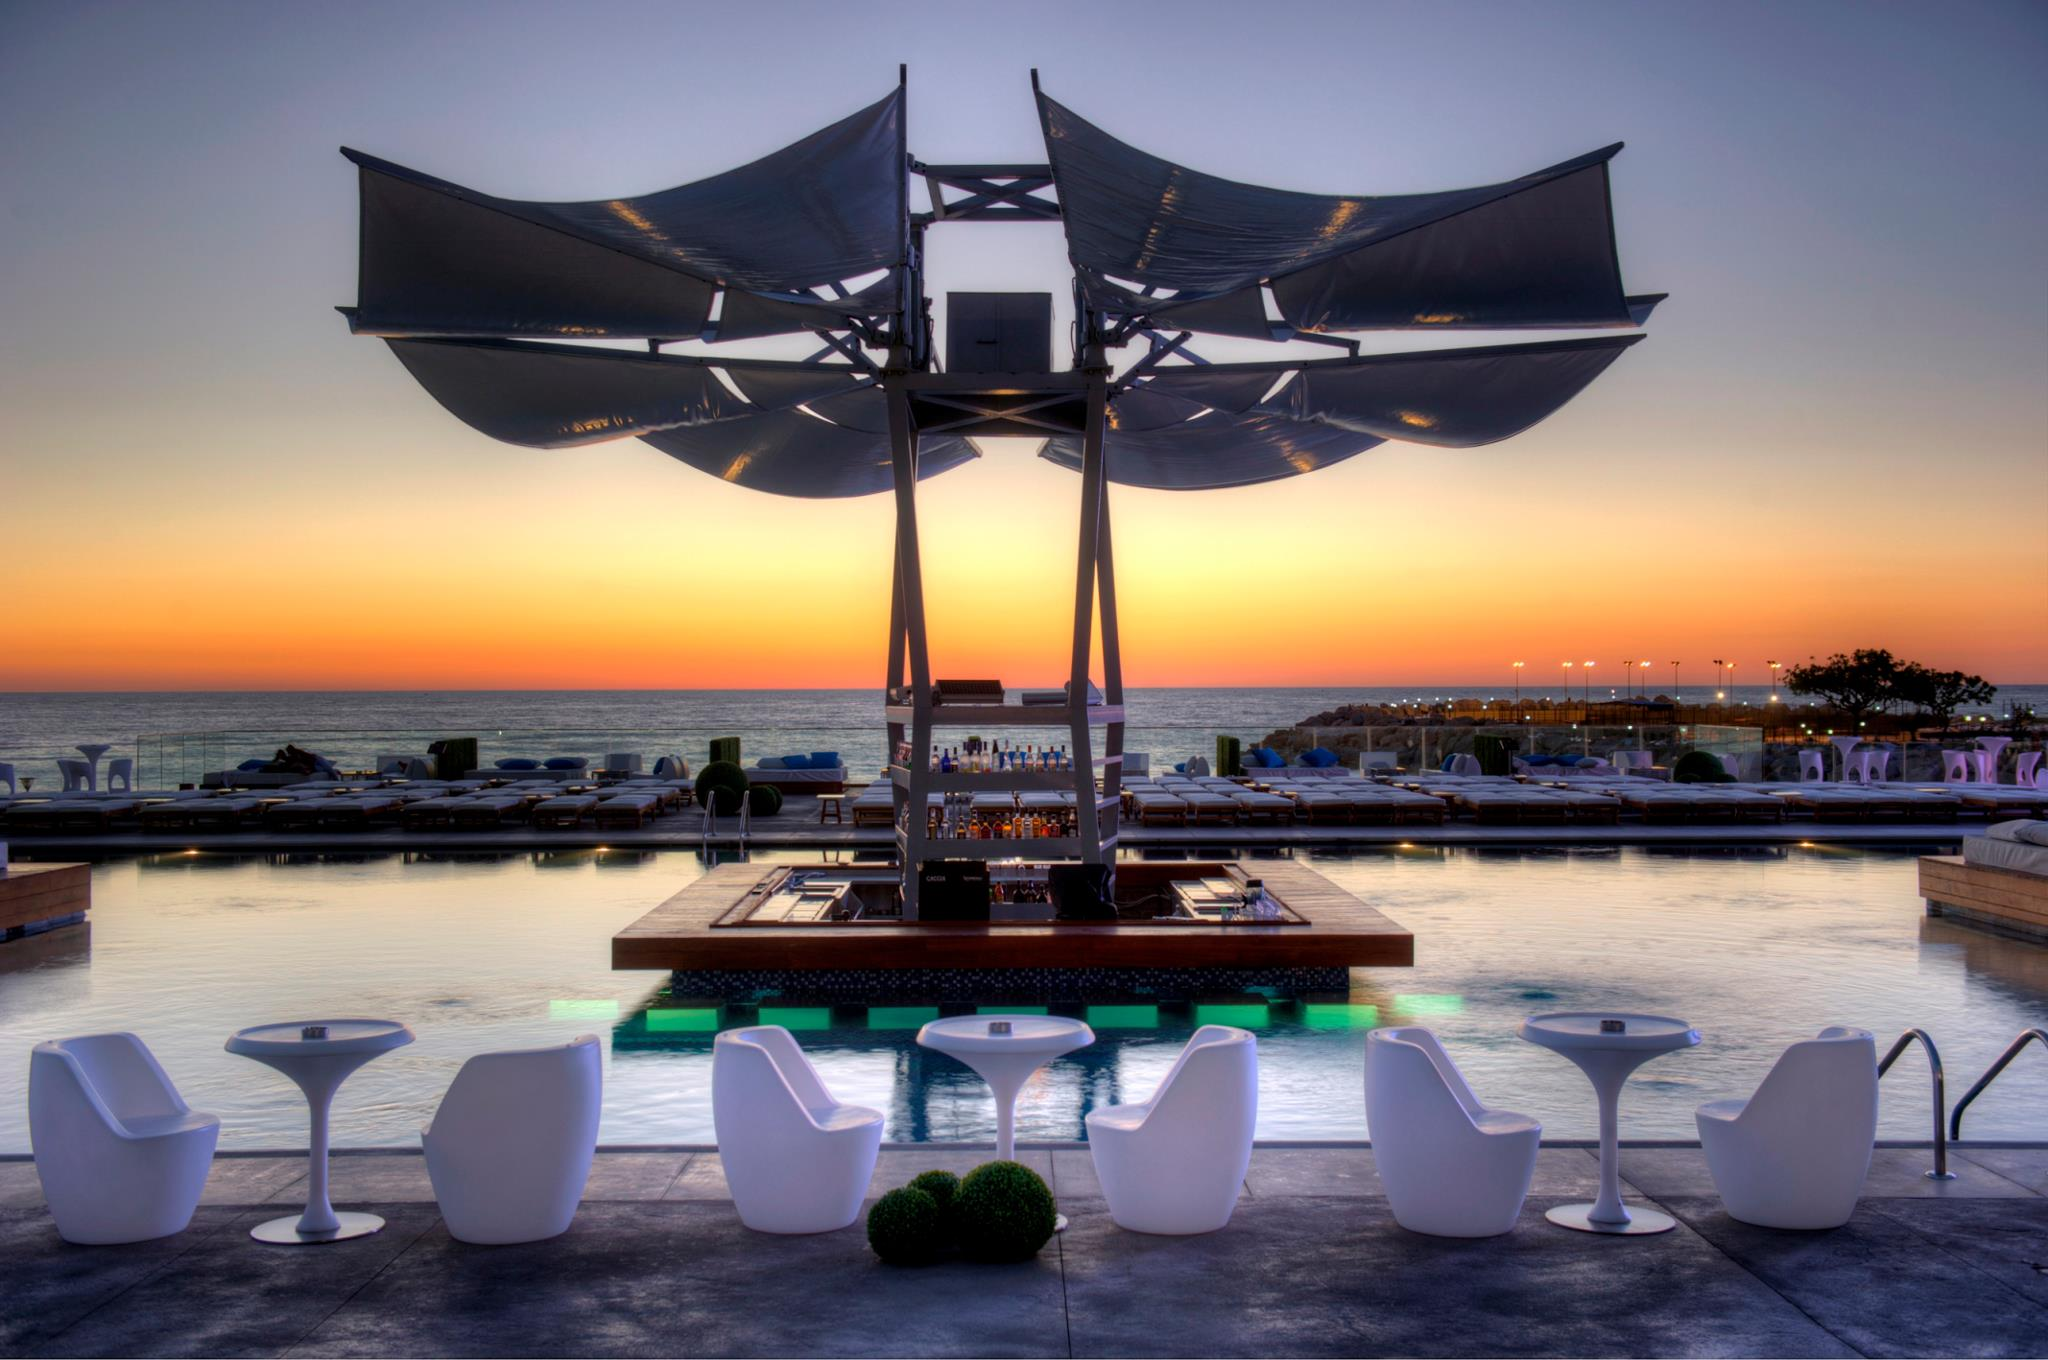 Top 10 beach resorts bars lebanon smf for Best beach boutique hotels